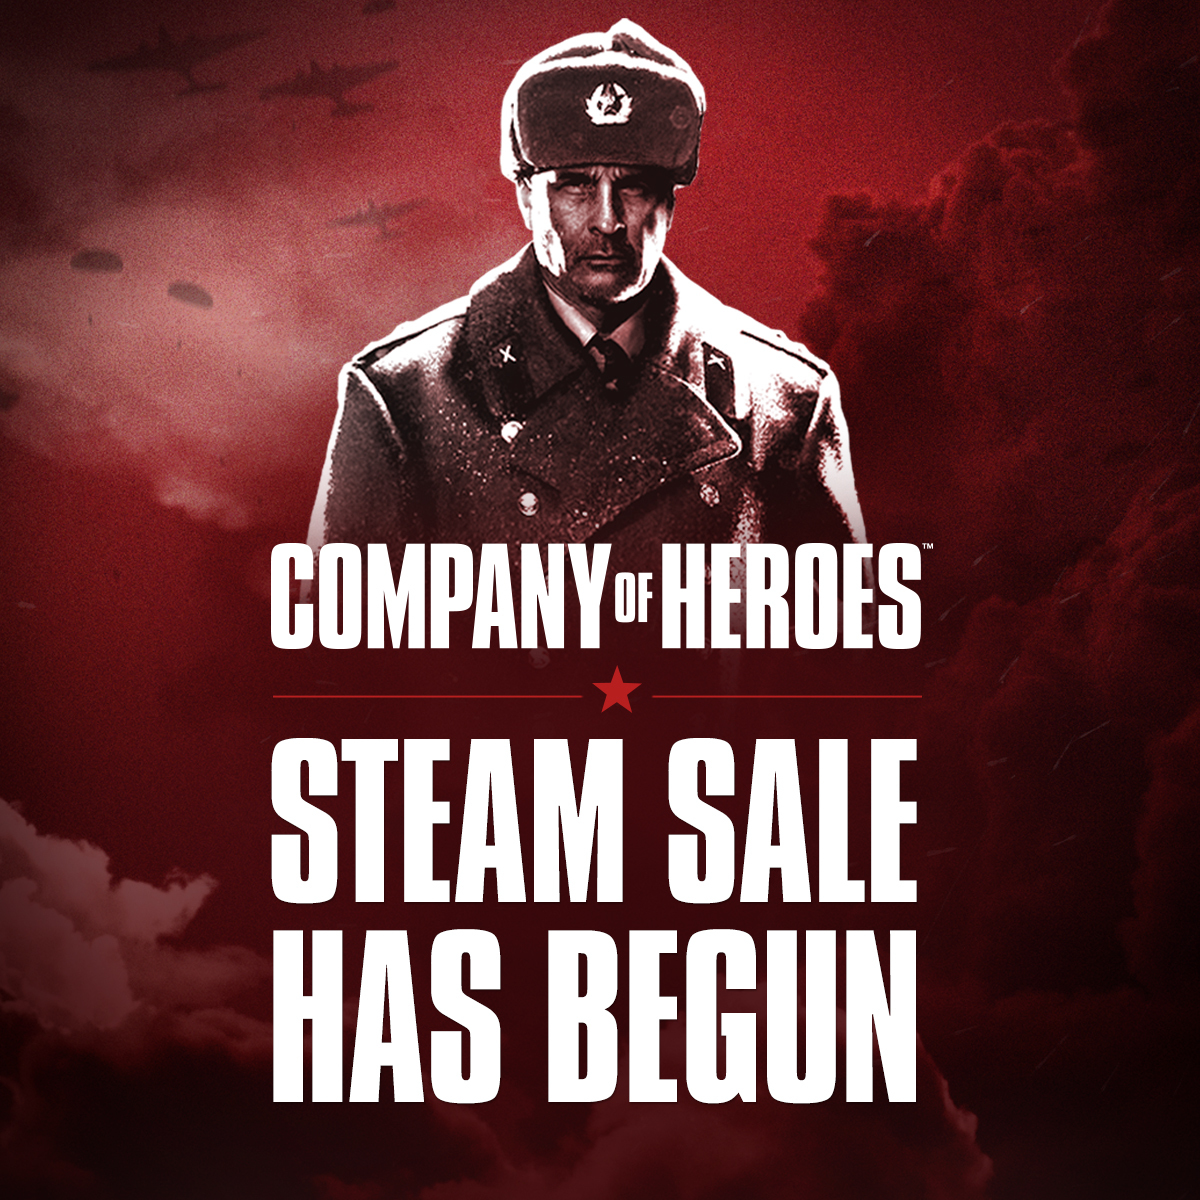 Company of Heroes Franchise Steam Sale Now Live!